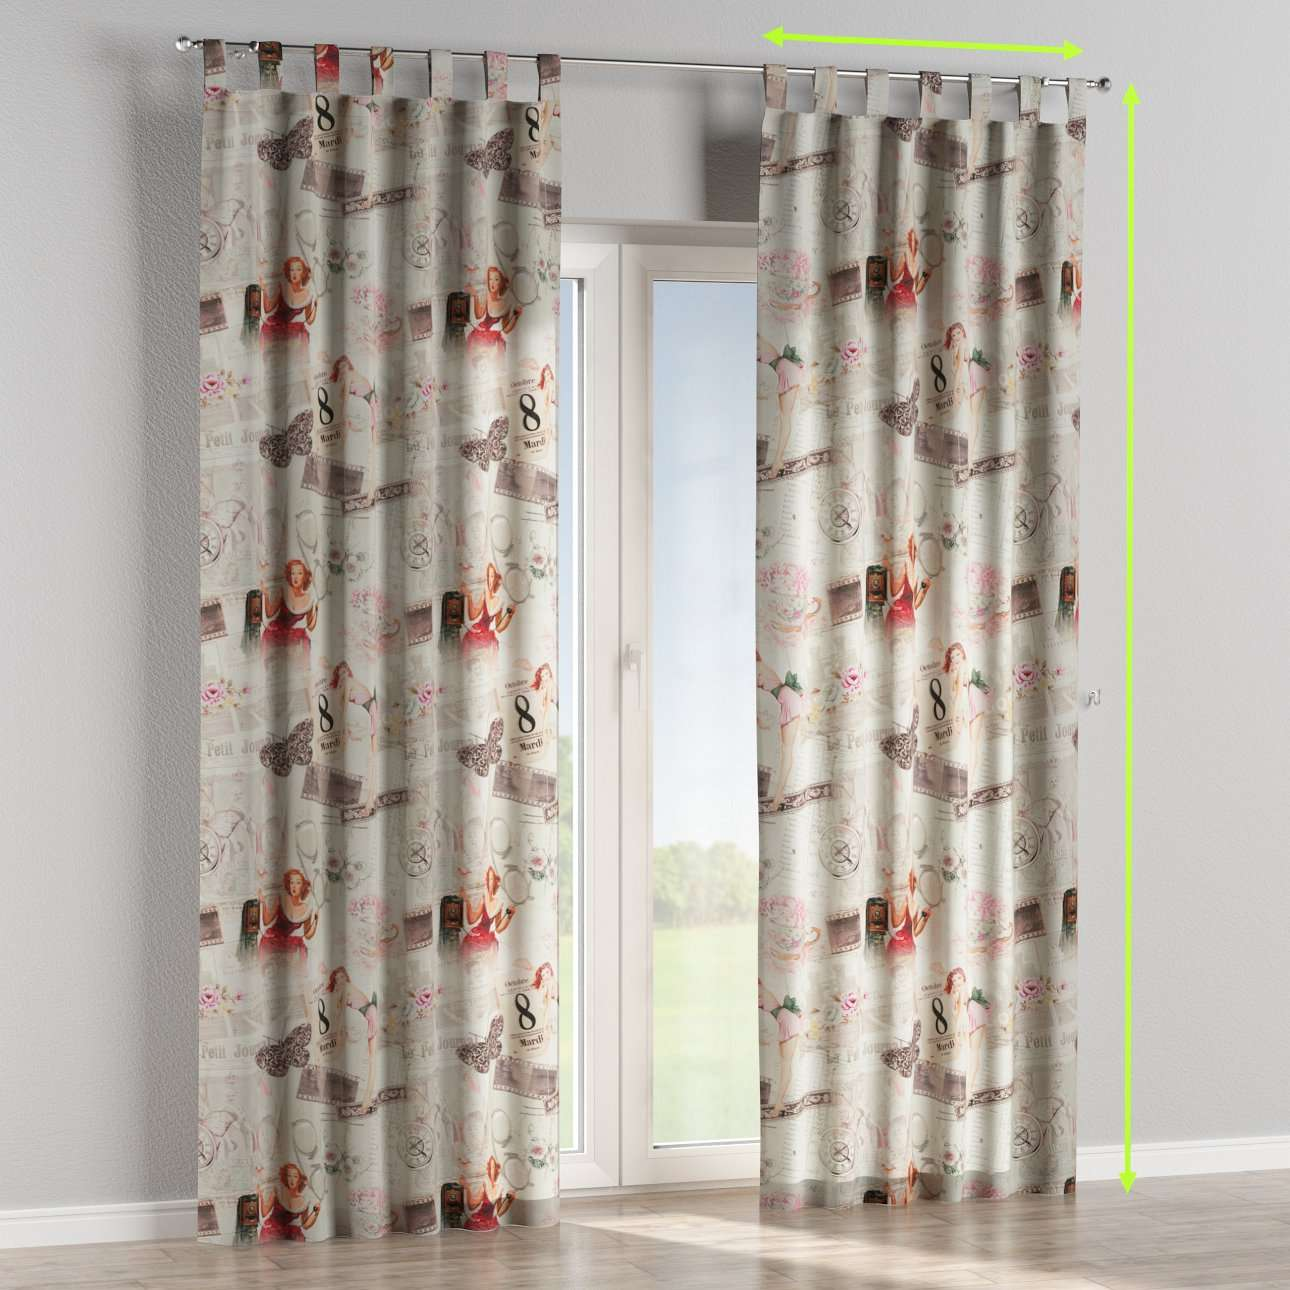 Tab top curtains in collection Freestyle, fabric: 140-99